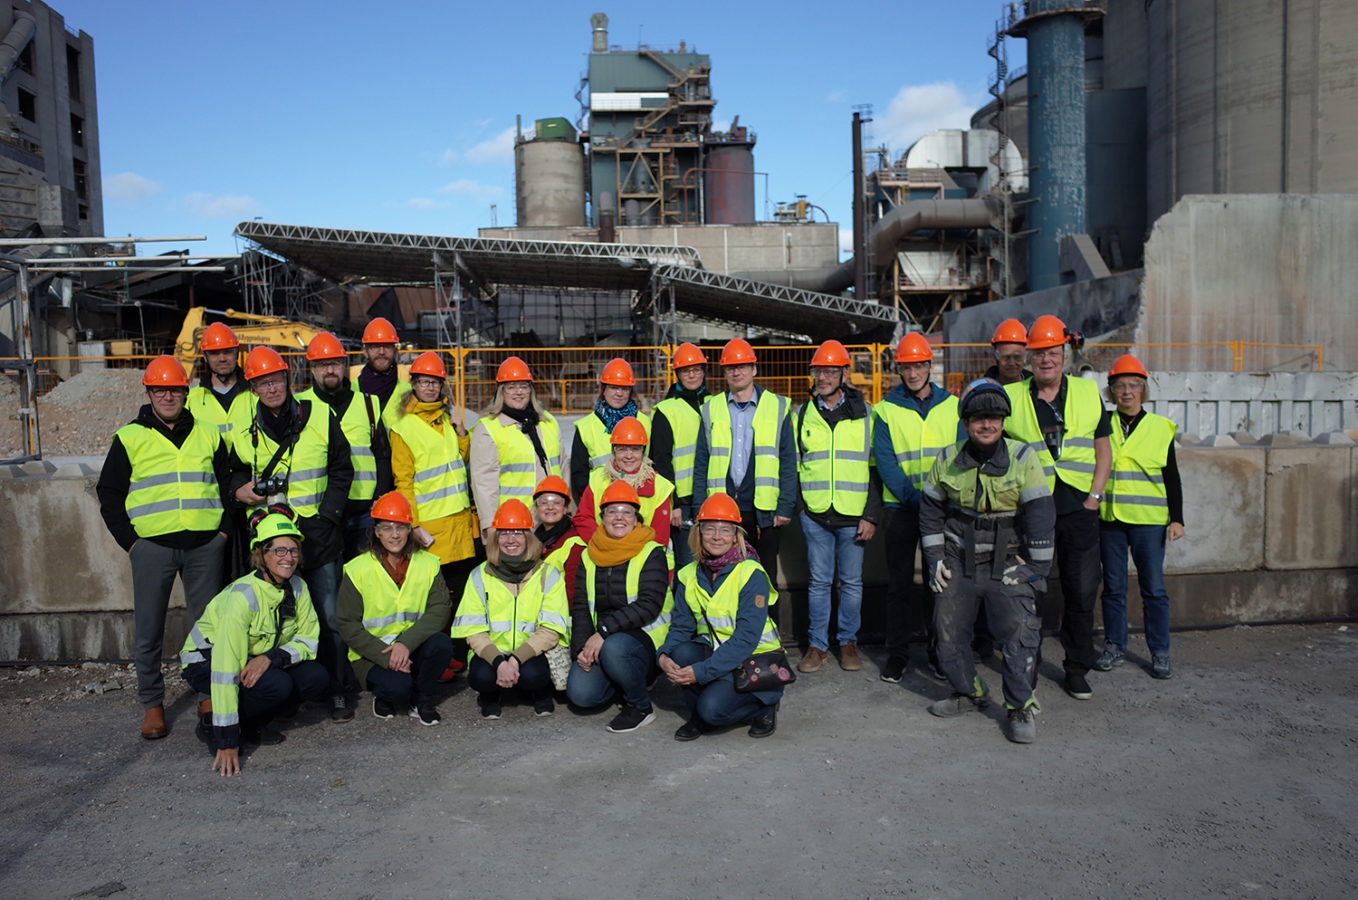 SEABASED Project team wearing safety vests and helmets in Cementa's factory in Gotland